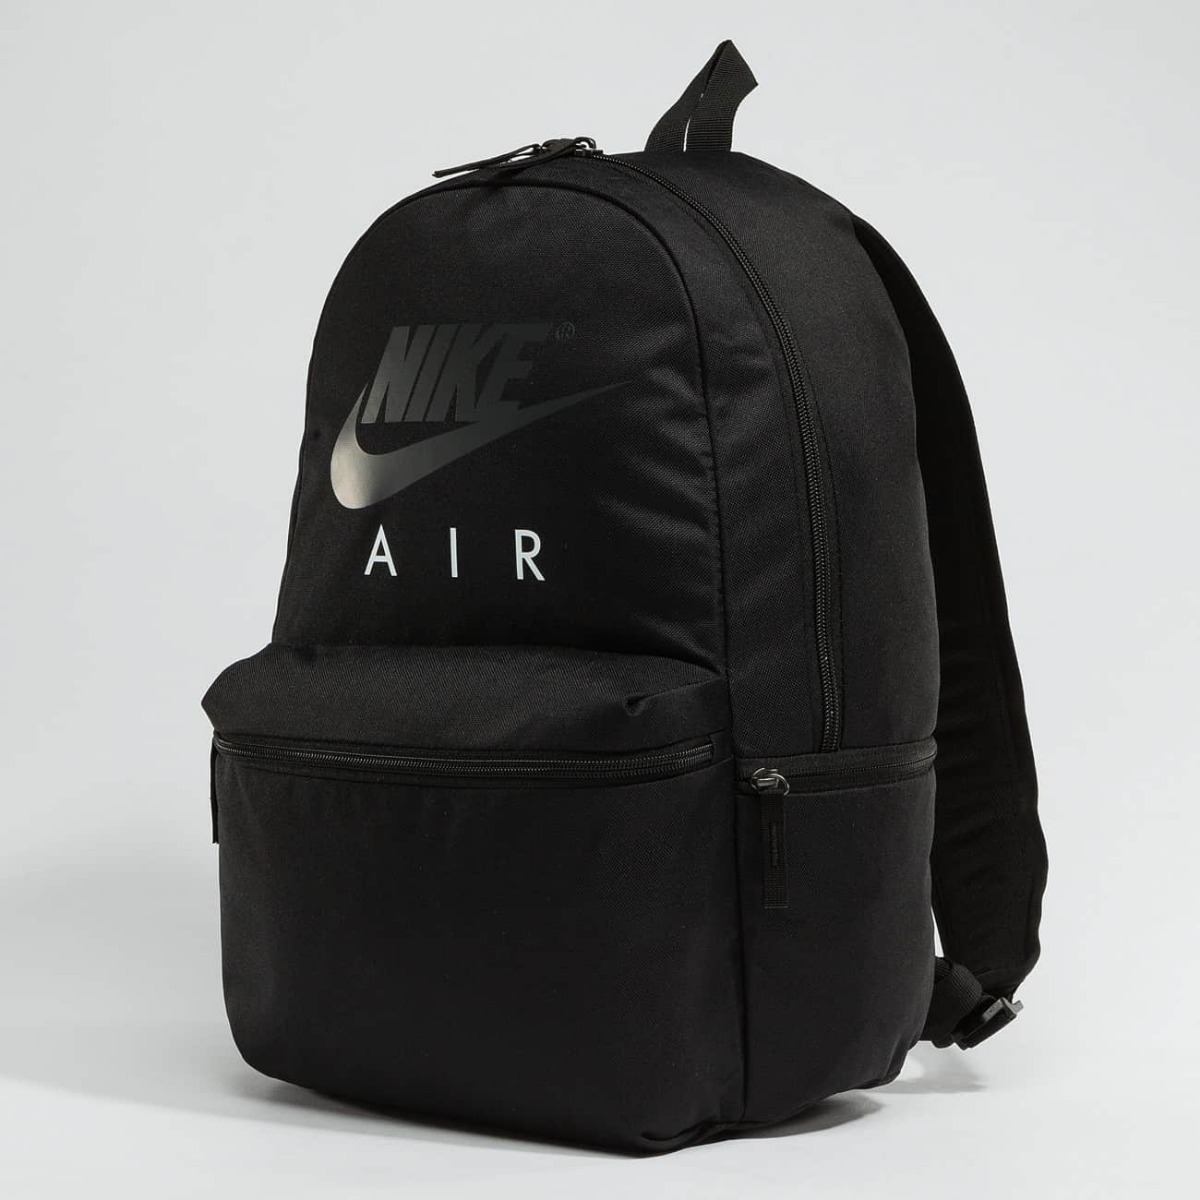 114faed4842db mochila nike air blackpack hombre mujer. Cargando zoom.